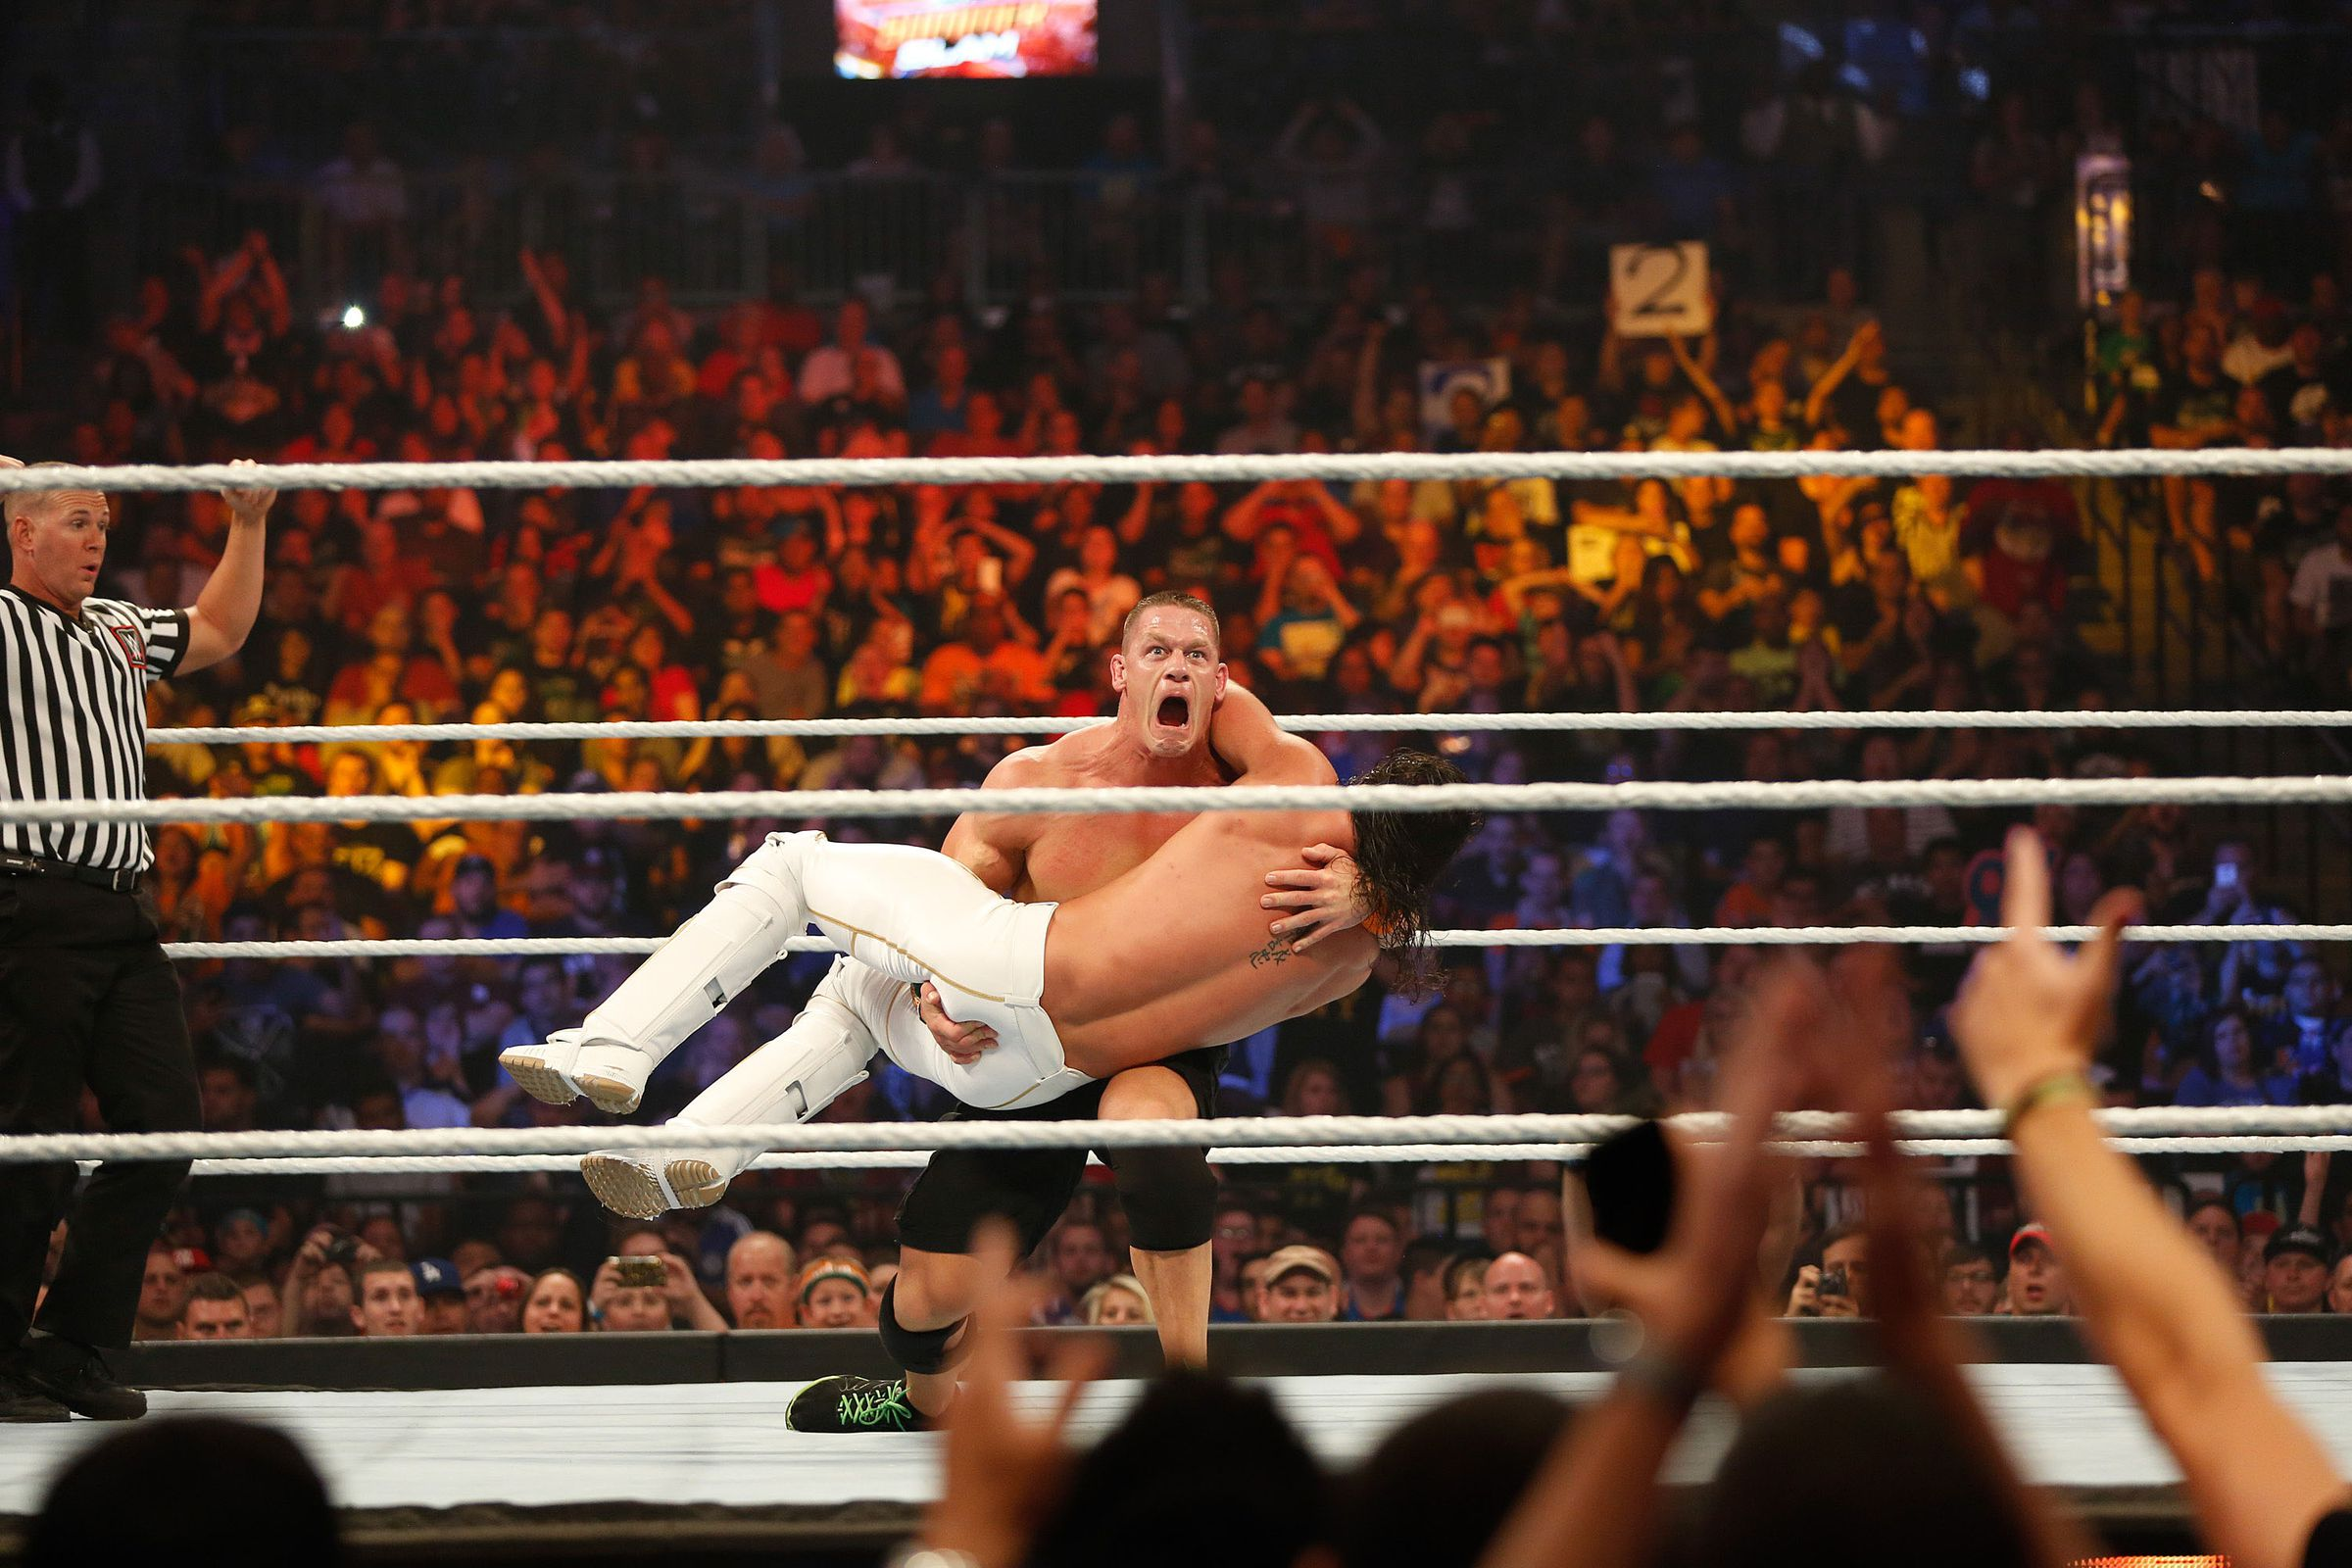 How John Cena's Injury Impacts WWE Royal Rumble 2016 and Beyond